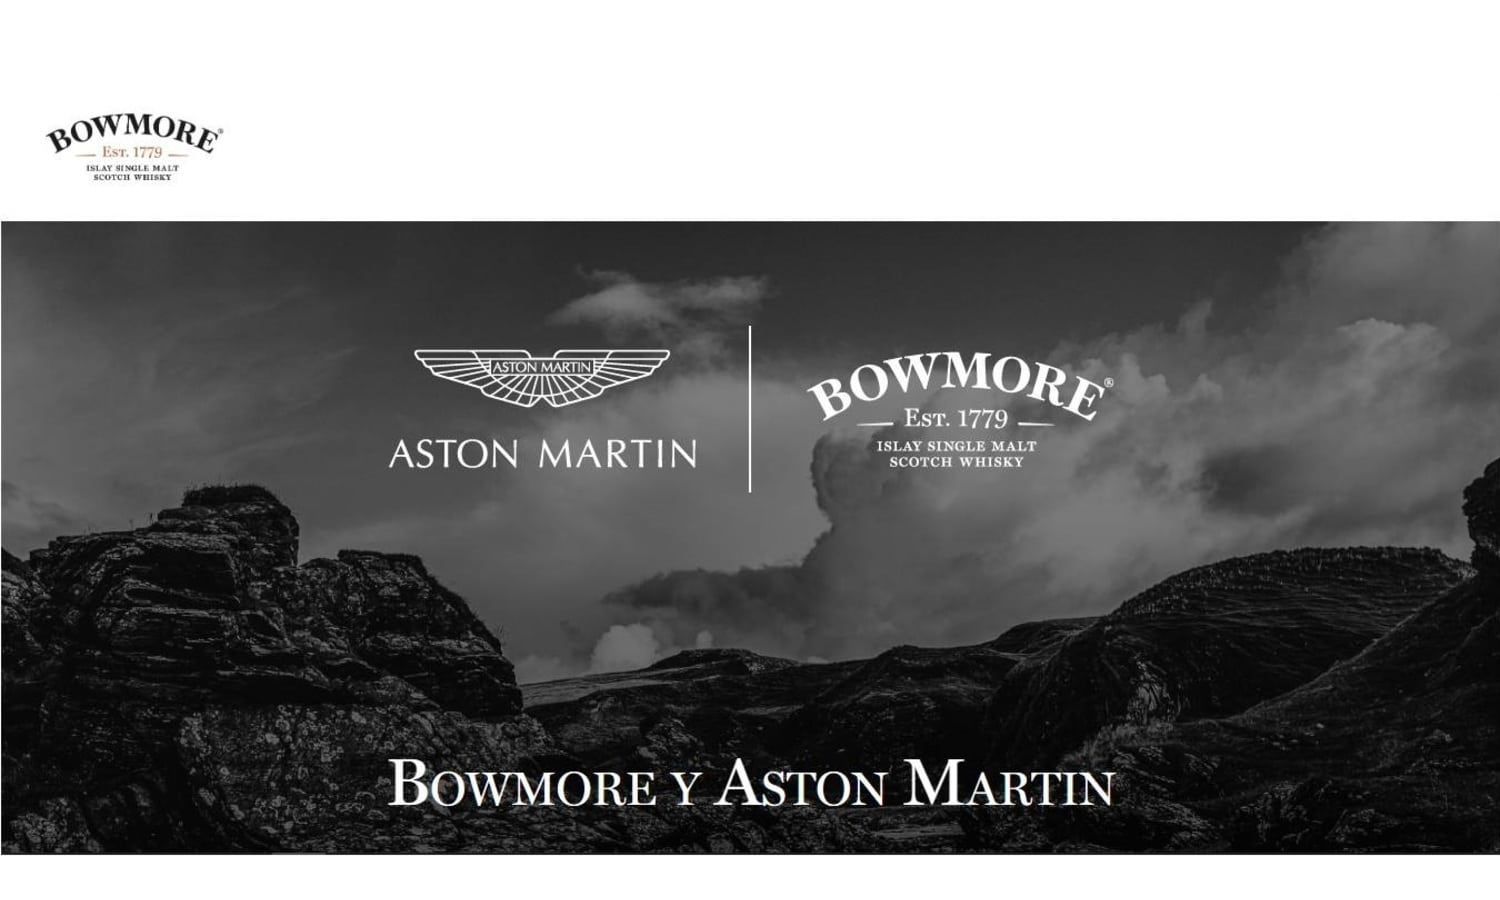 Aston Martin - Bowmore asociated